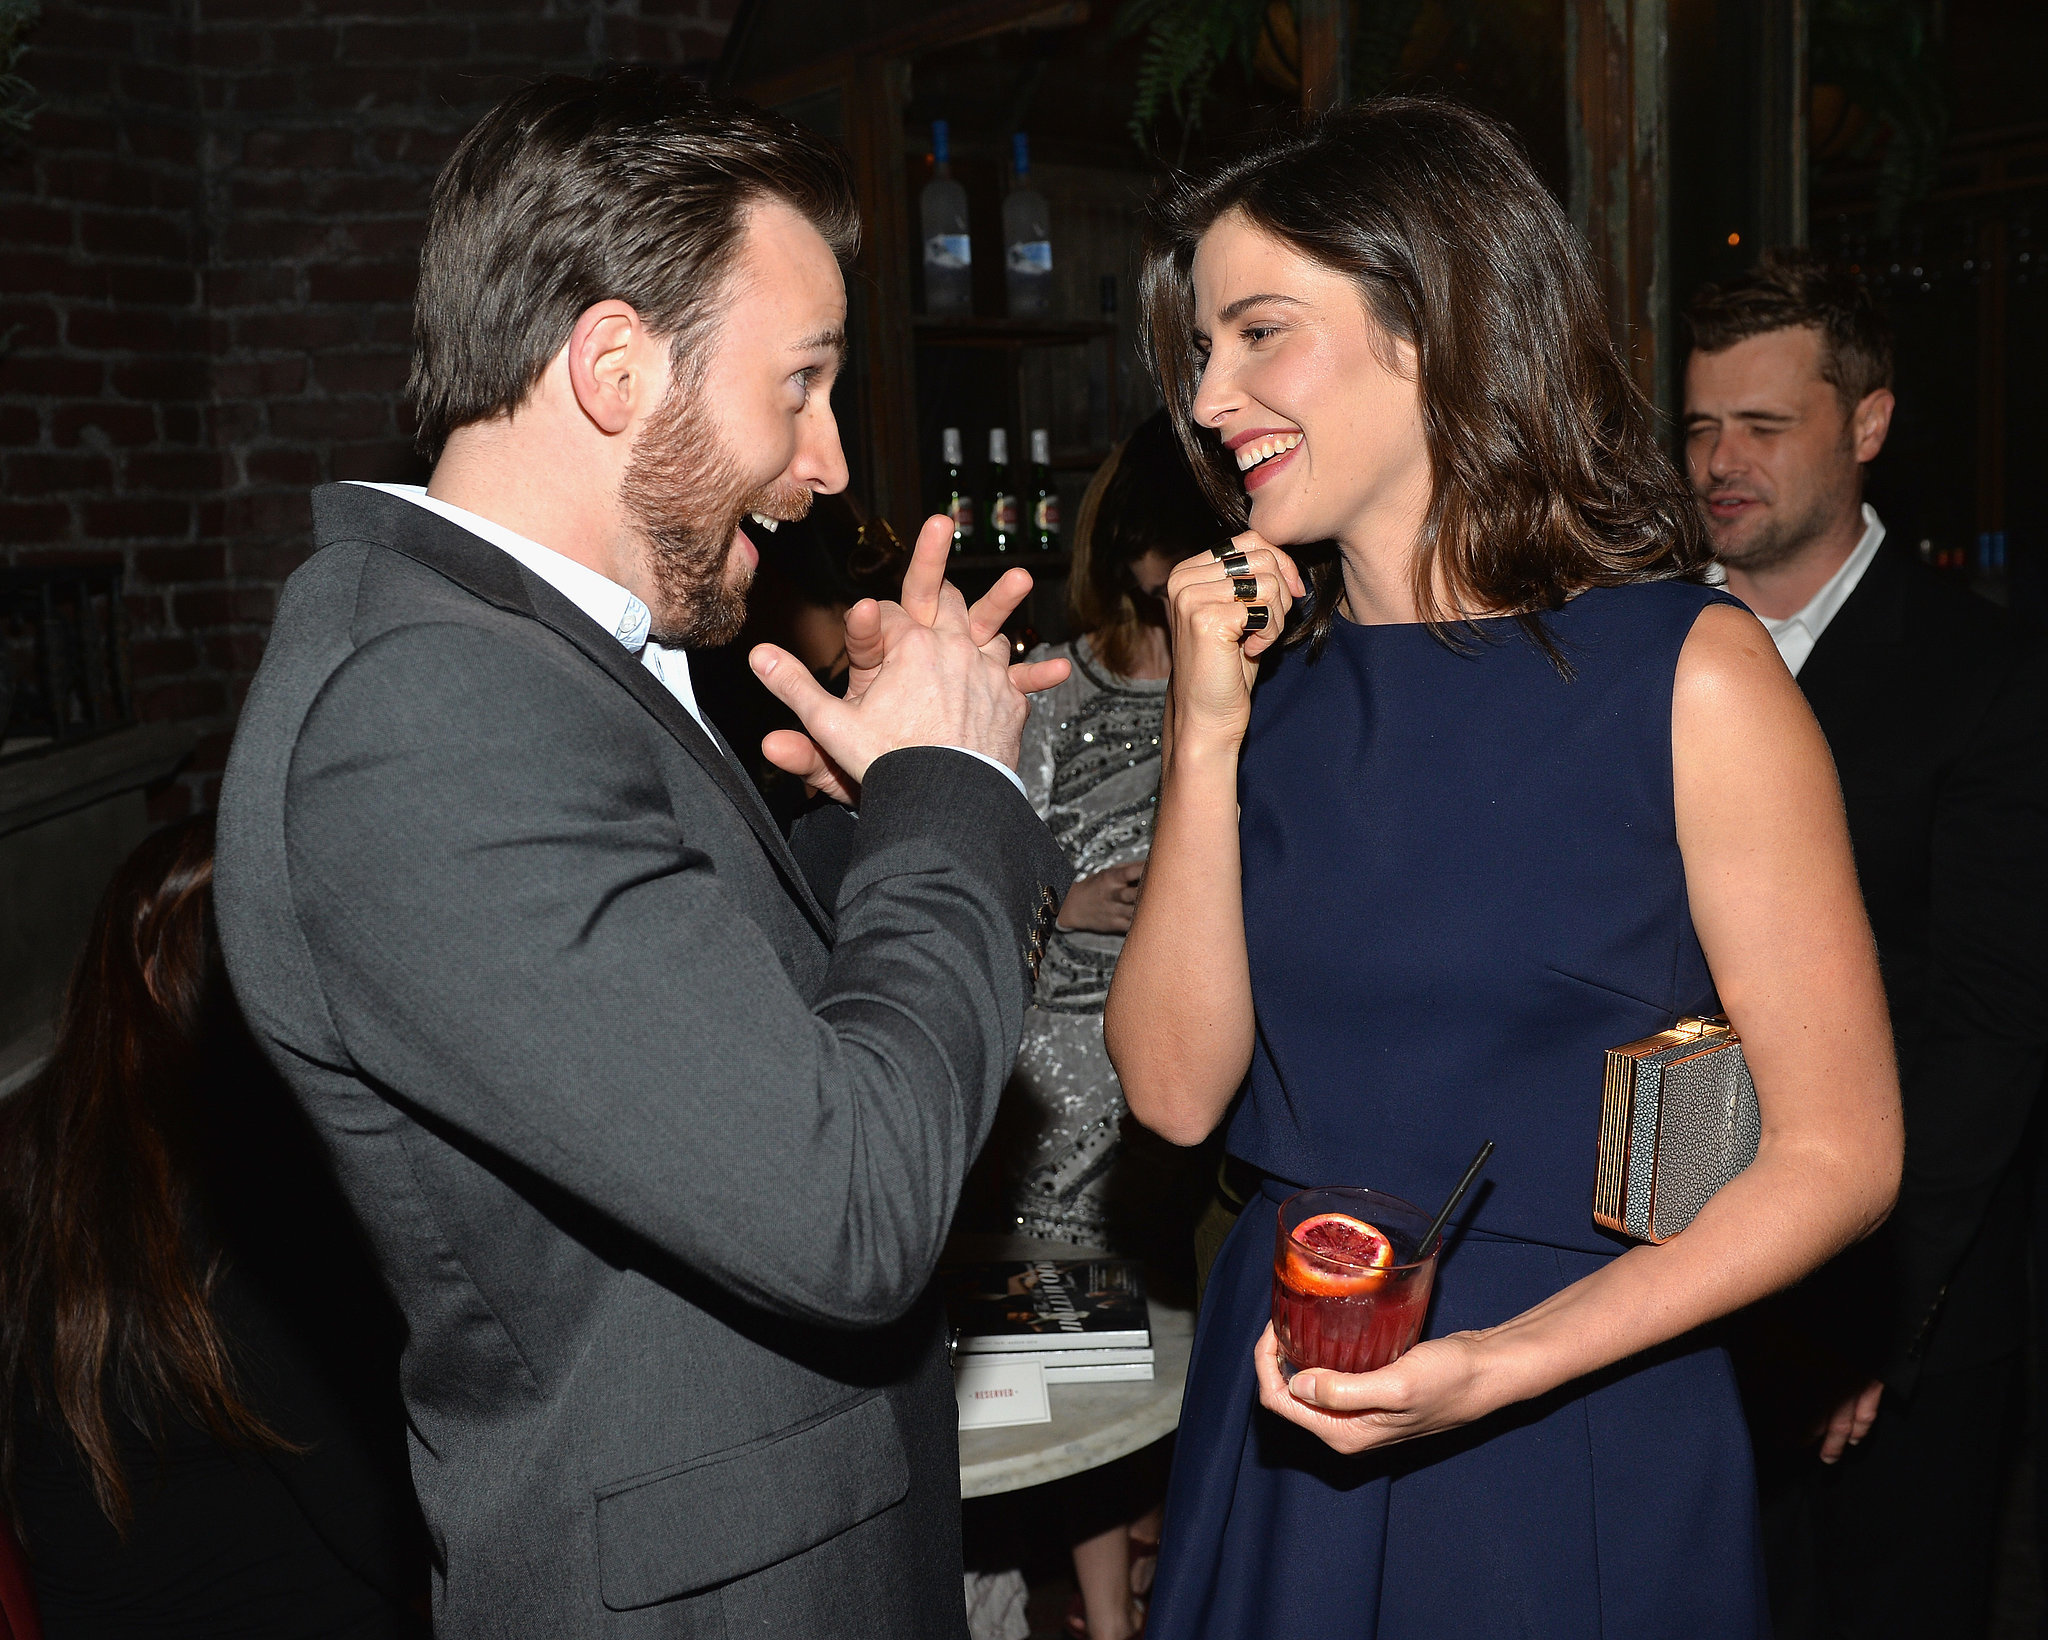 Chris Evans made Cobie Smulders laugh inside Vanity Fair's pre-Oscars party on Tuesday.